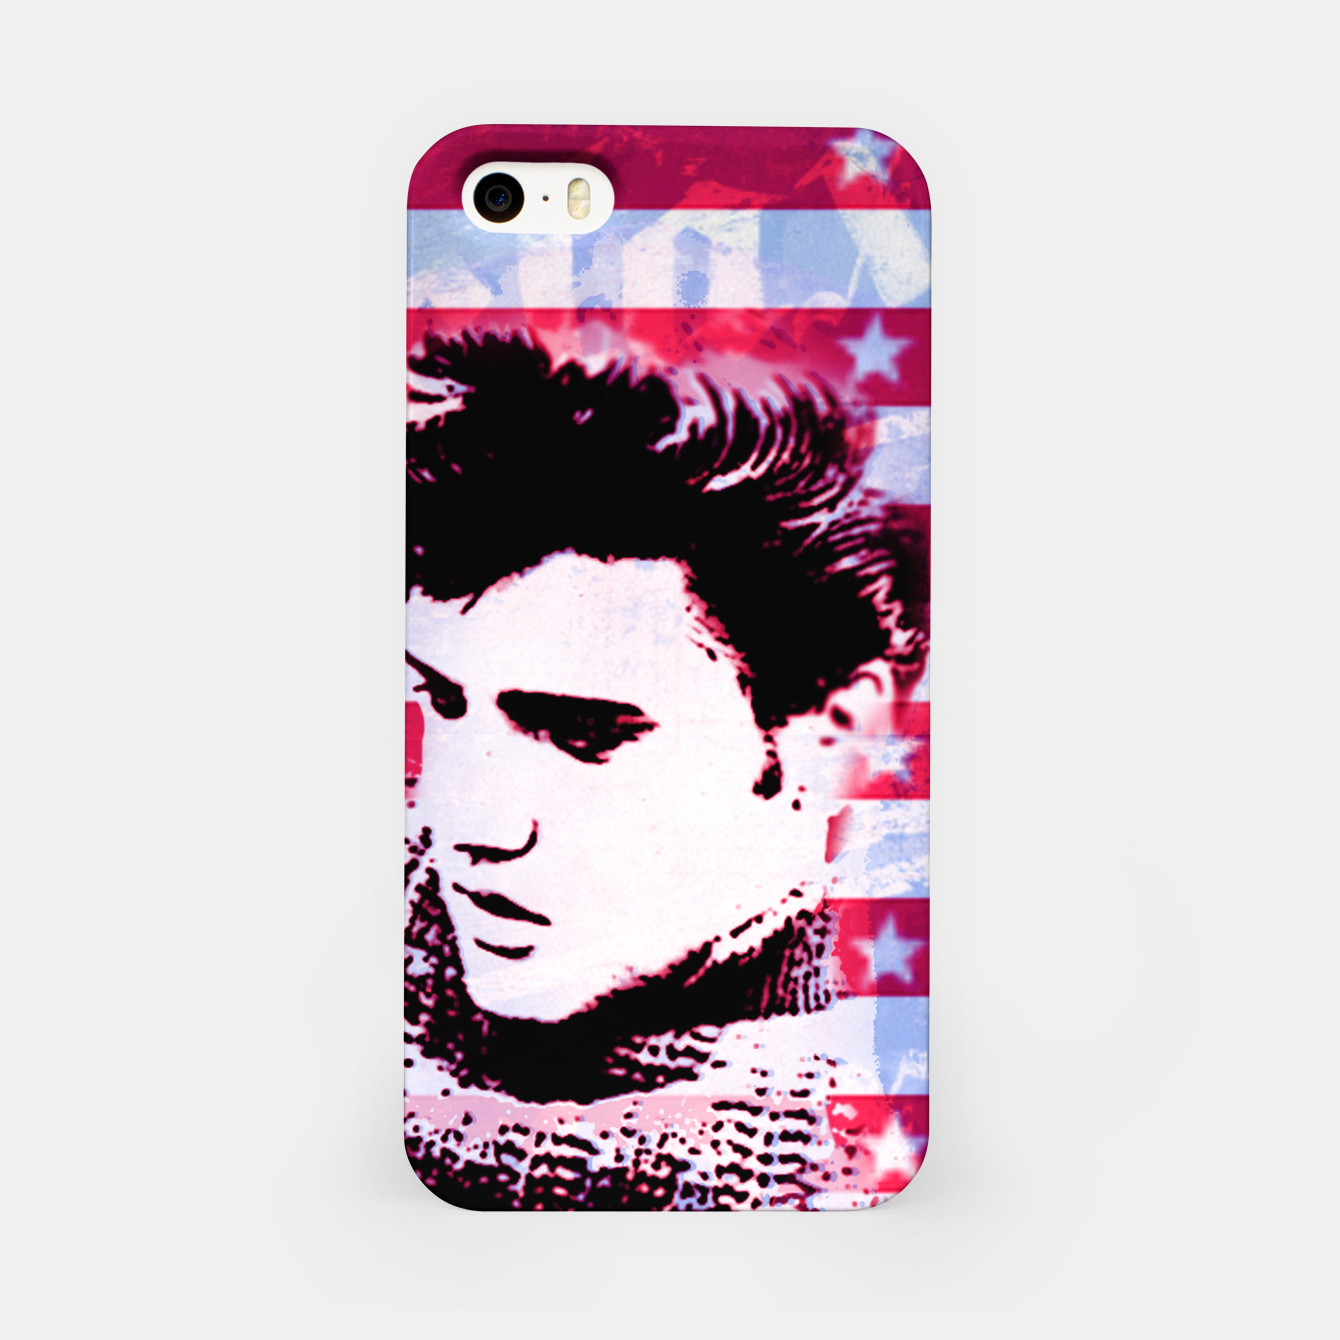 Foto Elvis portrait nº2 iPhone Case - Live Heroes